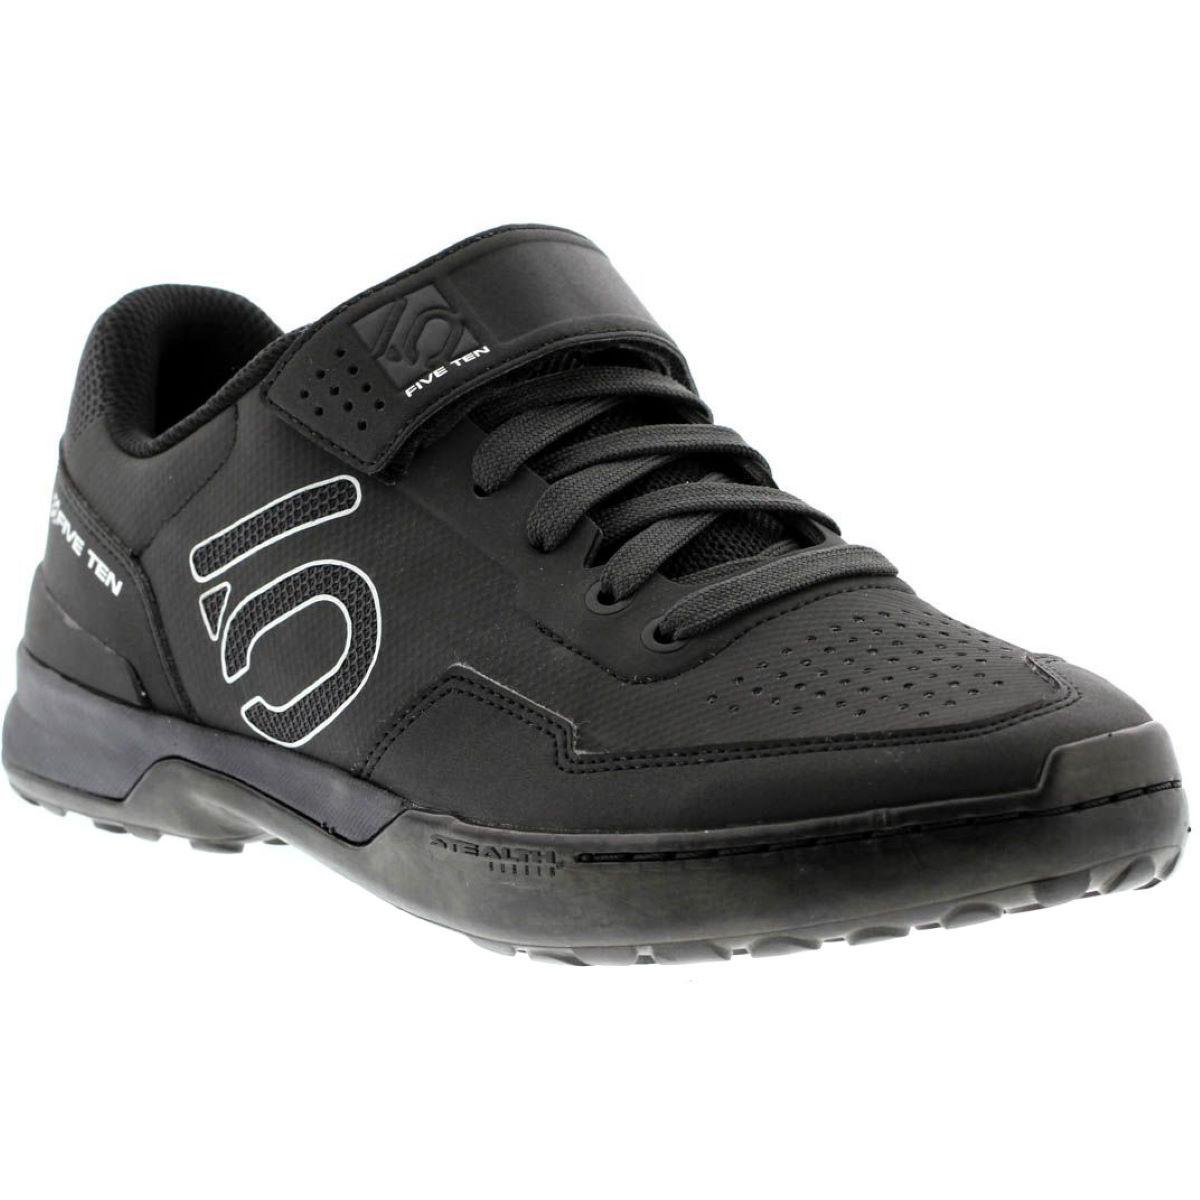 Chaussures VTT Five Ten Kestrel Lace SPD - EU 39.5 Carbon Black